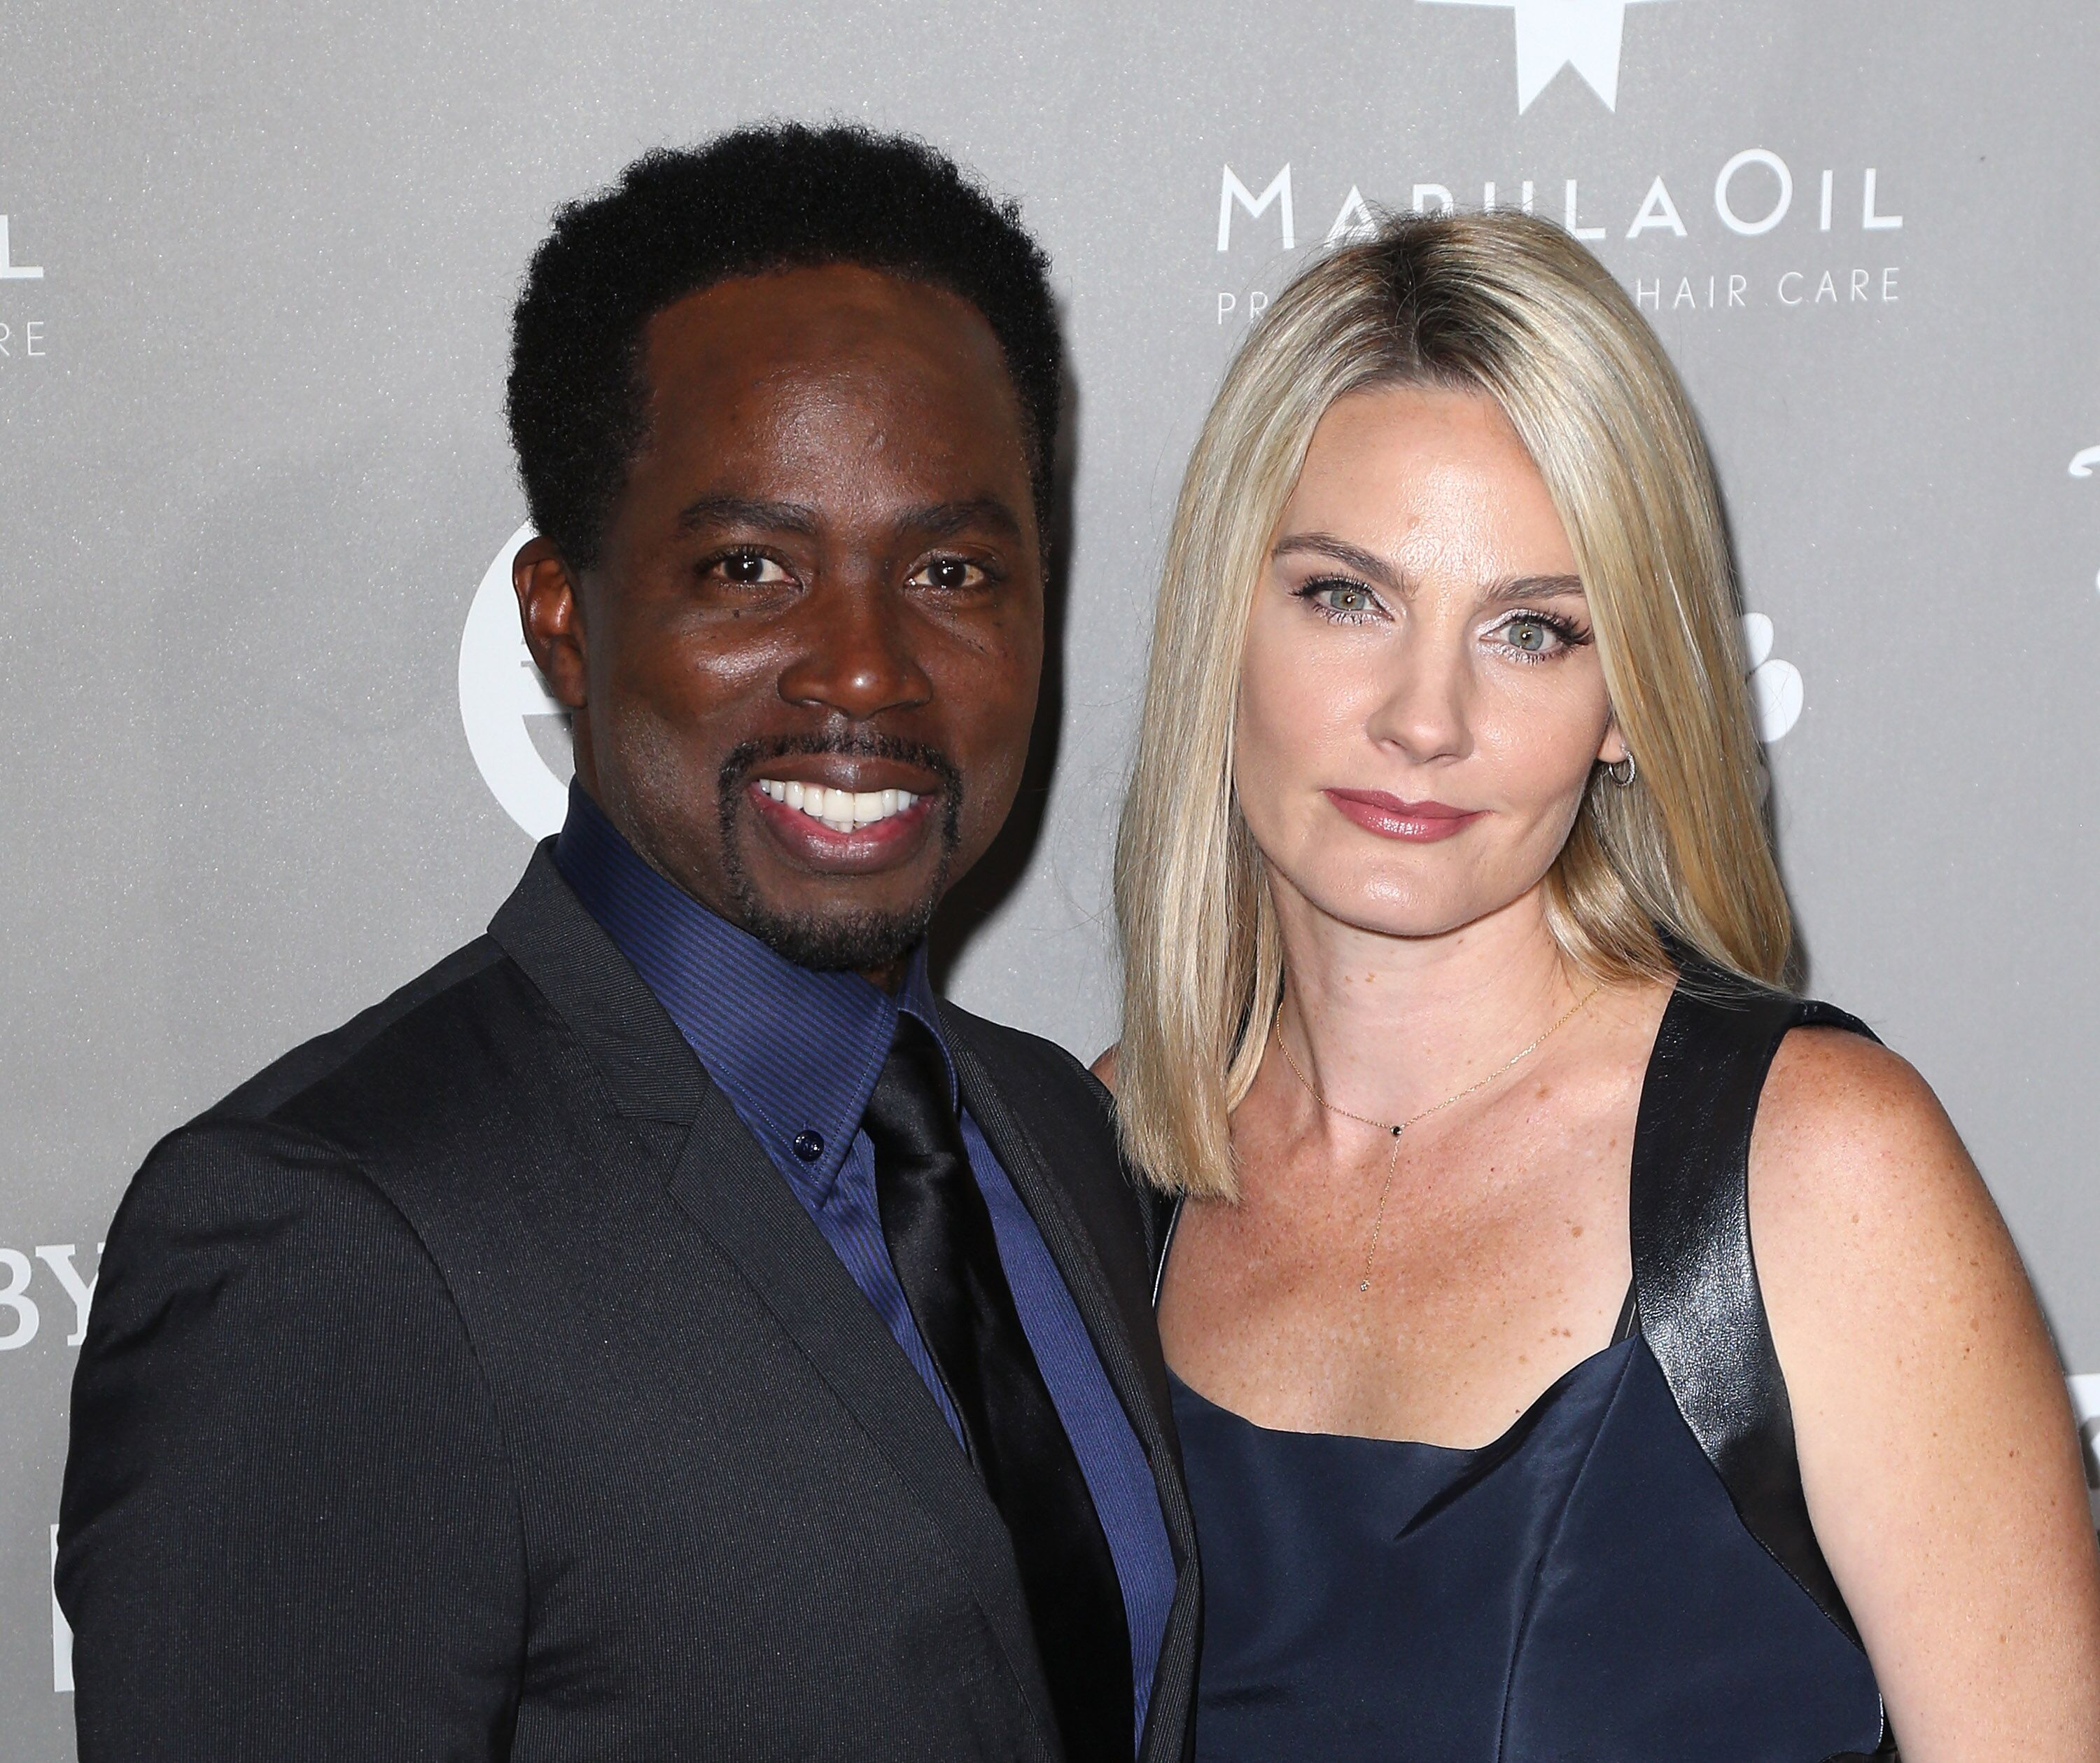 Actor Harold Perrineau (L) and wife Brittany Perrineau attend the 2015 Baby2Baby Gala presented by MarulaOil & Kayne Capital Advisors Foundation at 3LABS on November 14, 2015 in Culver City, California. | Photo: Getty Images.